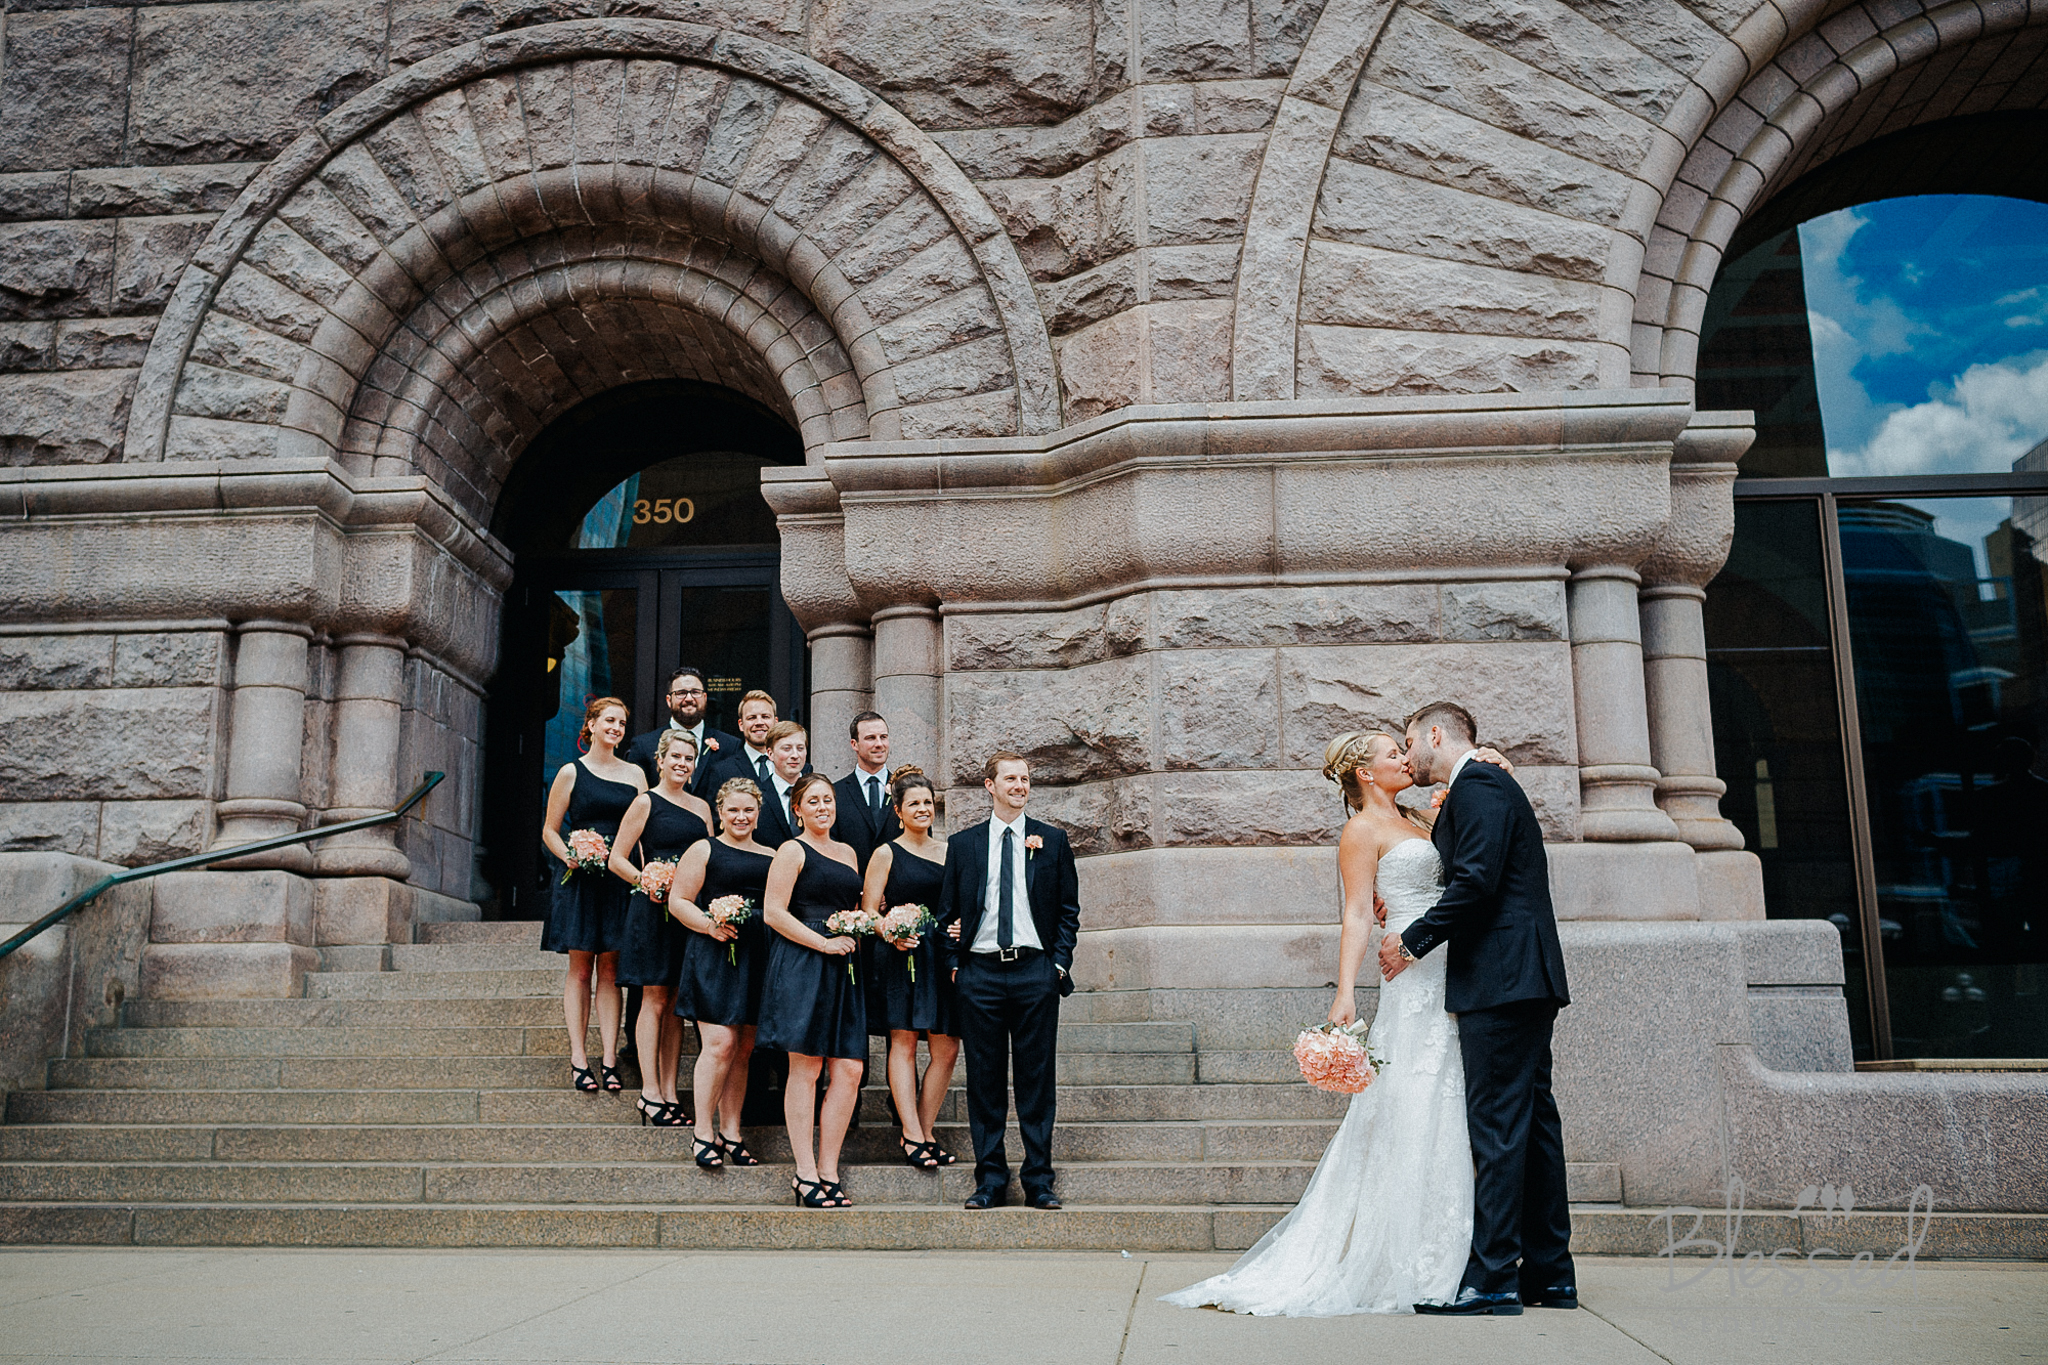 Destination Wedding Photography Minnesota By Blessed Wedding Photographers-46.jpg